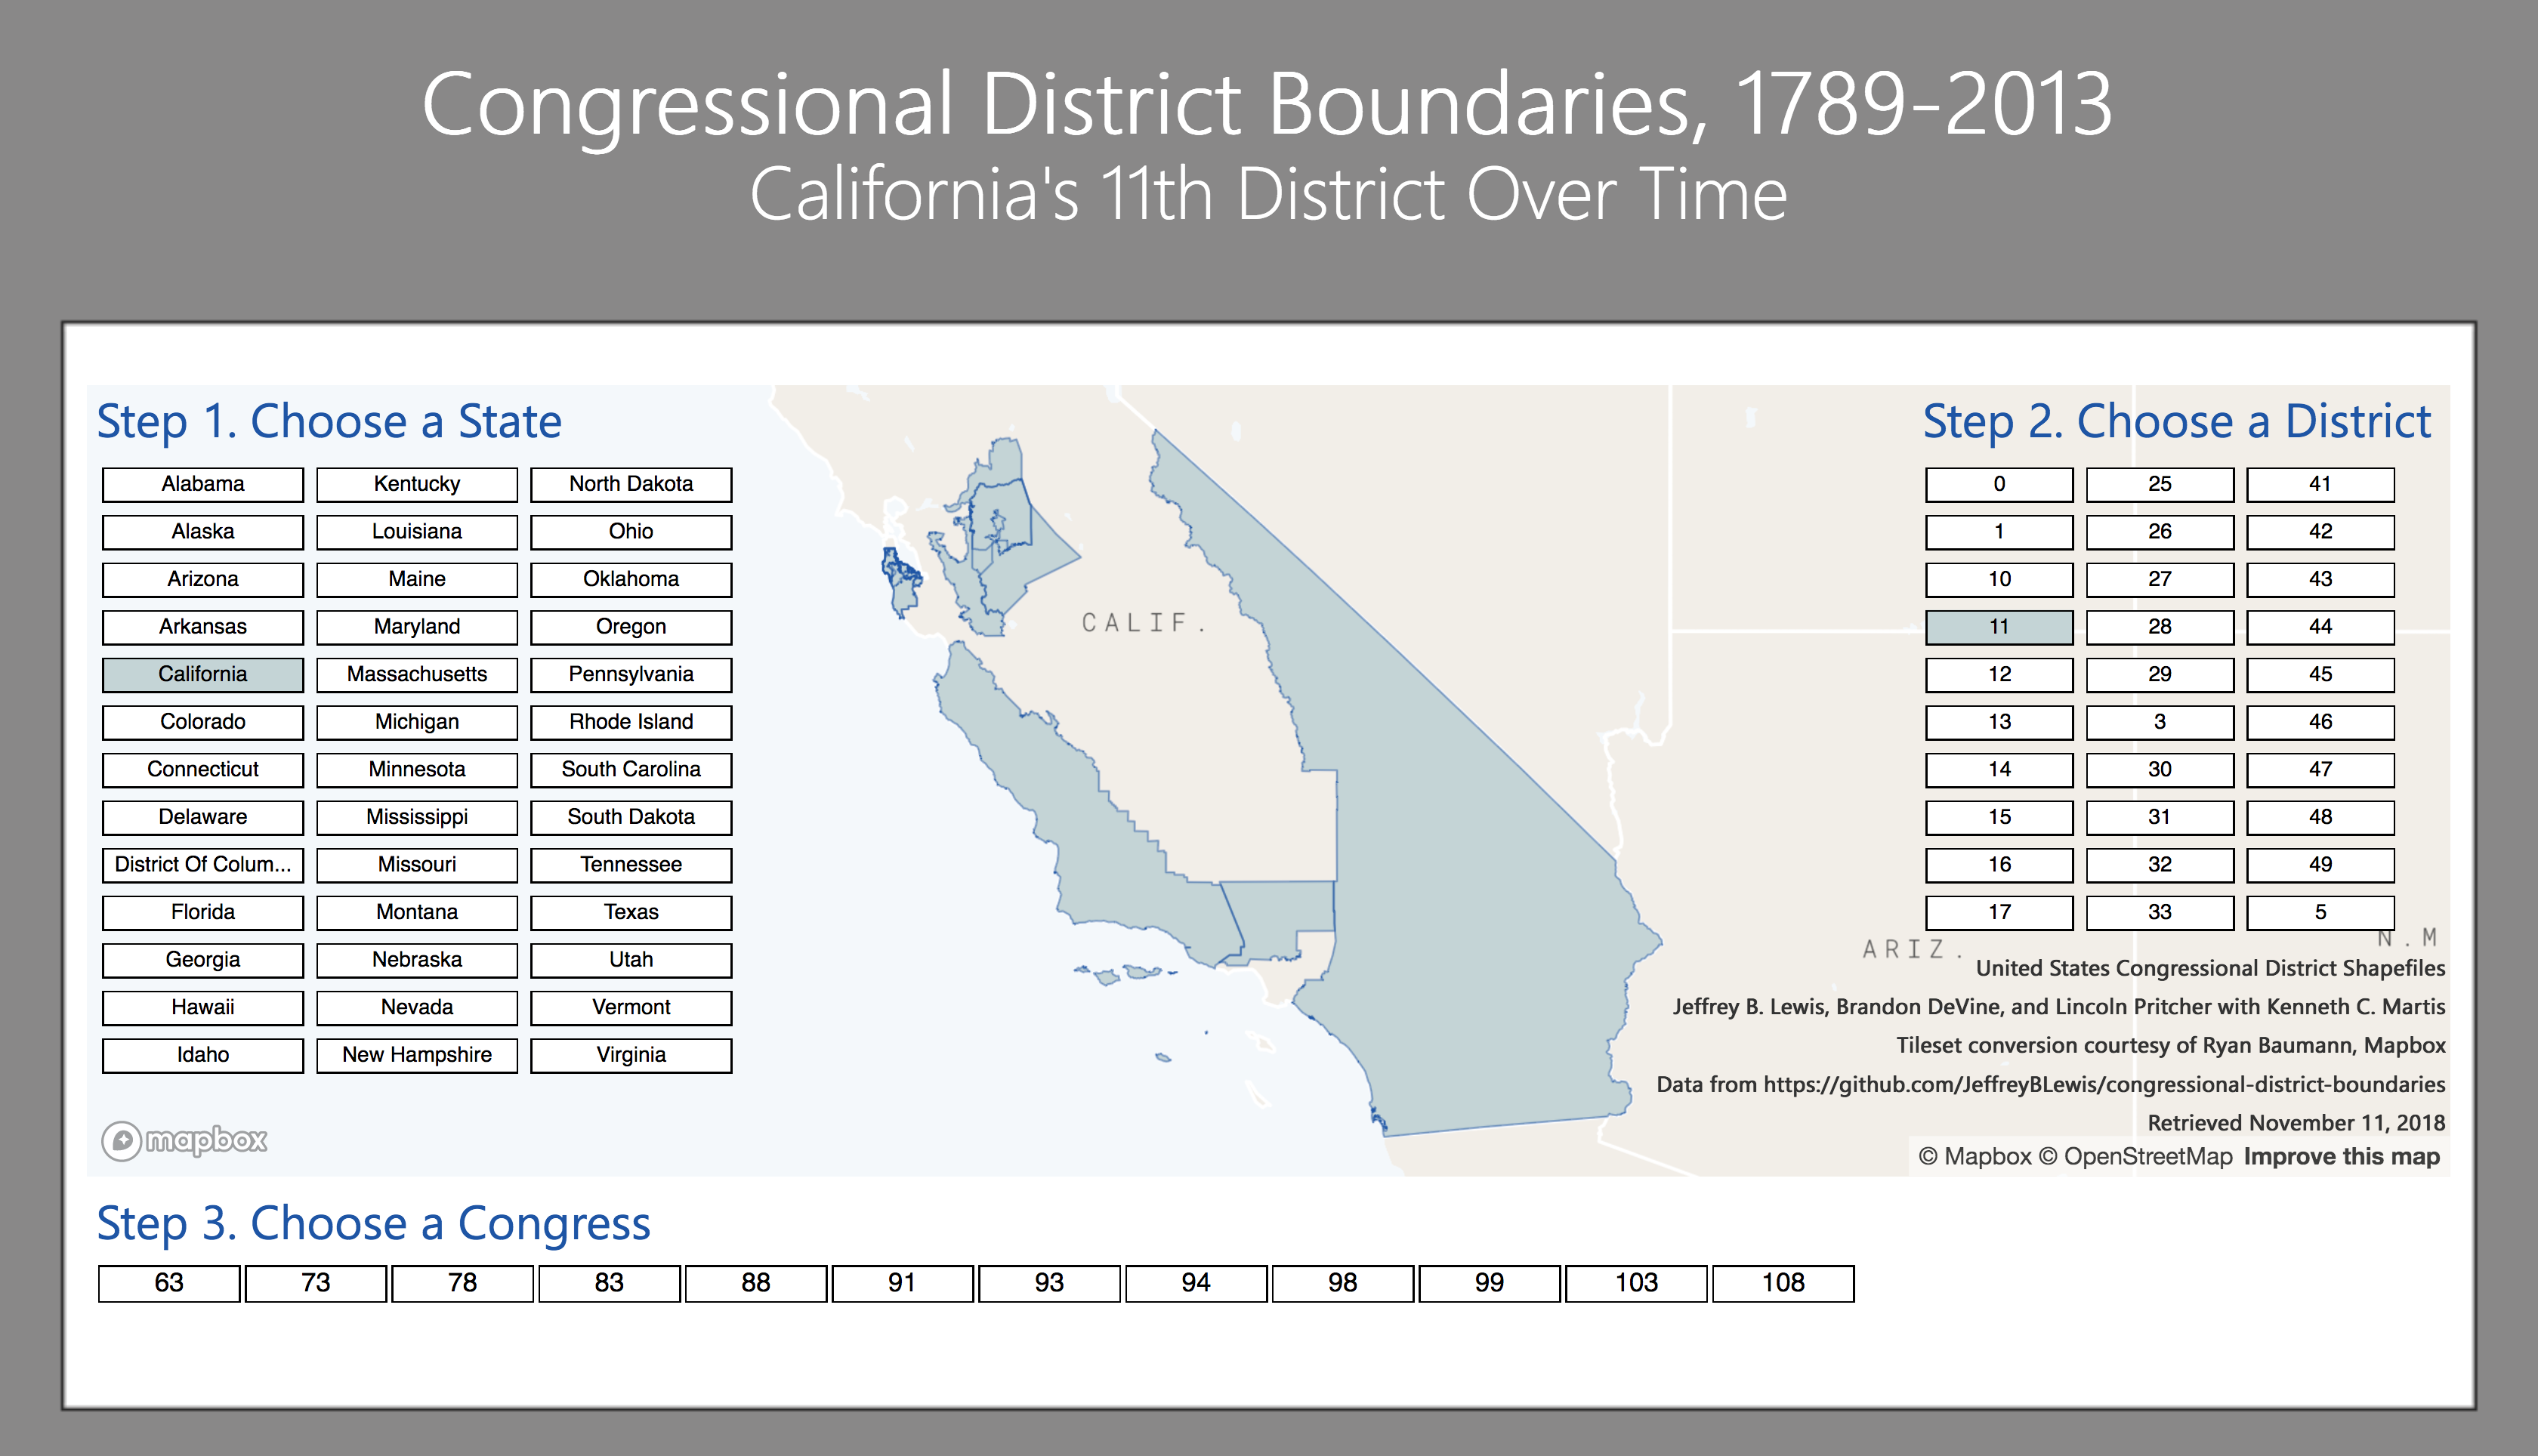 U.S. Congressional District Boundaries Over Time